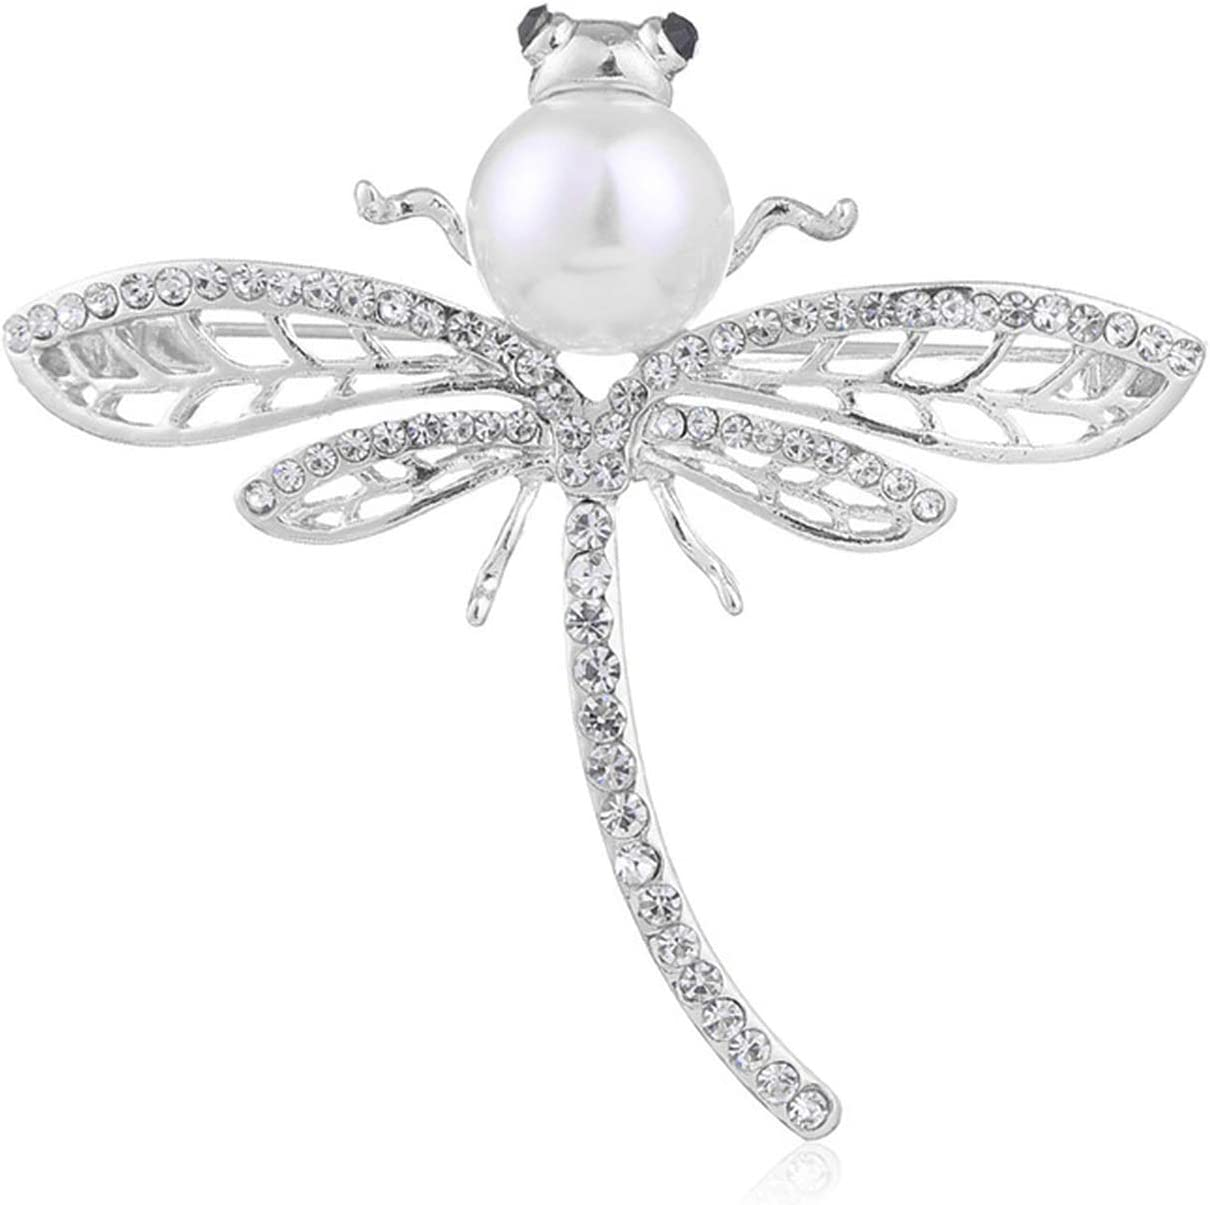 Kristing New Simple Brooch Upscale Vintage Brooch Dragonfly Coat Accessories Animal Brooch